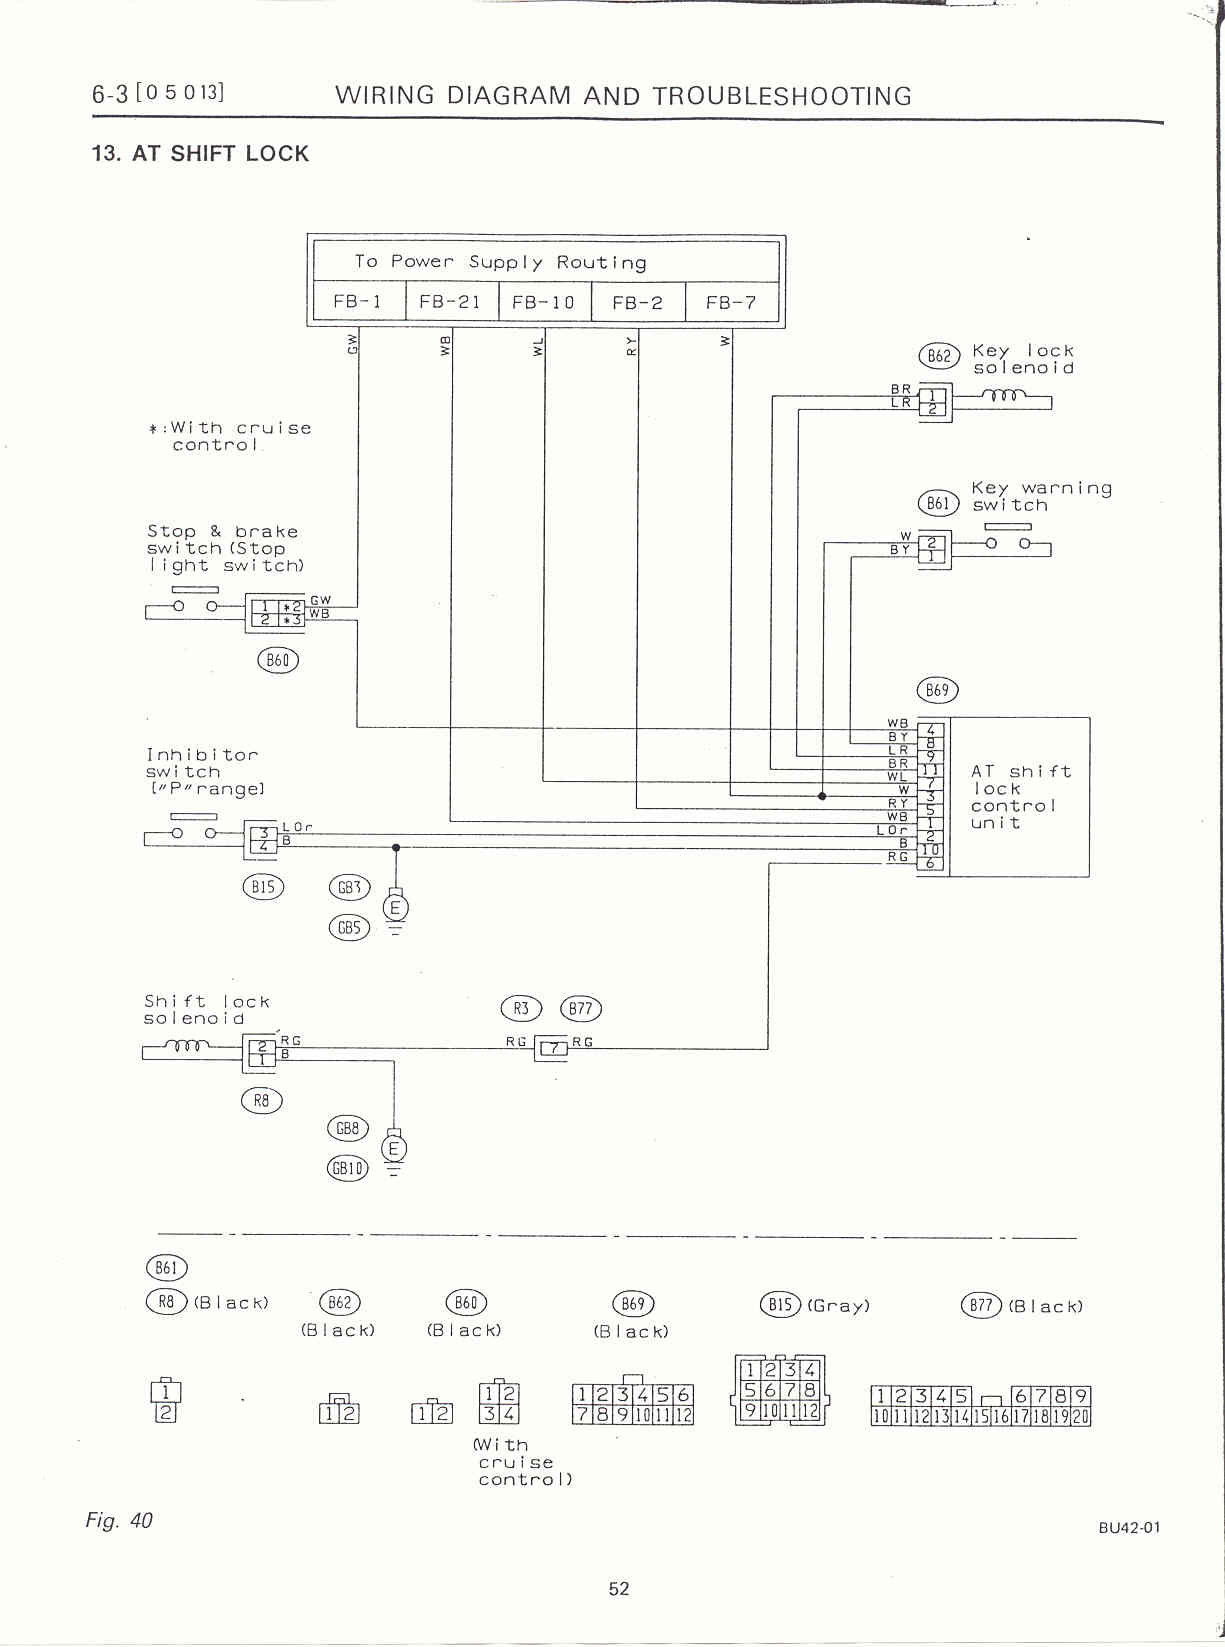 Subaru Central Locking Wiring Diagram - Wire Diagram Here on